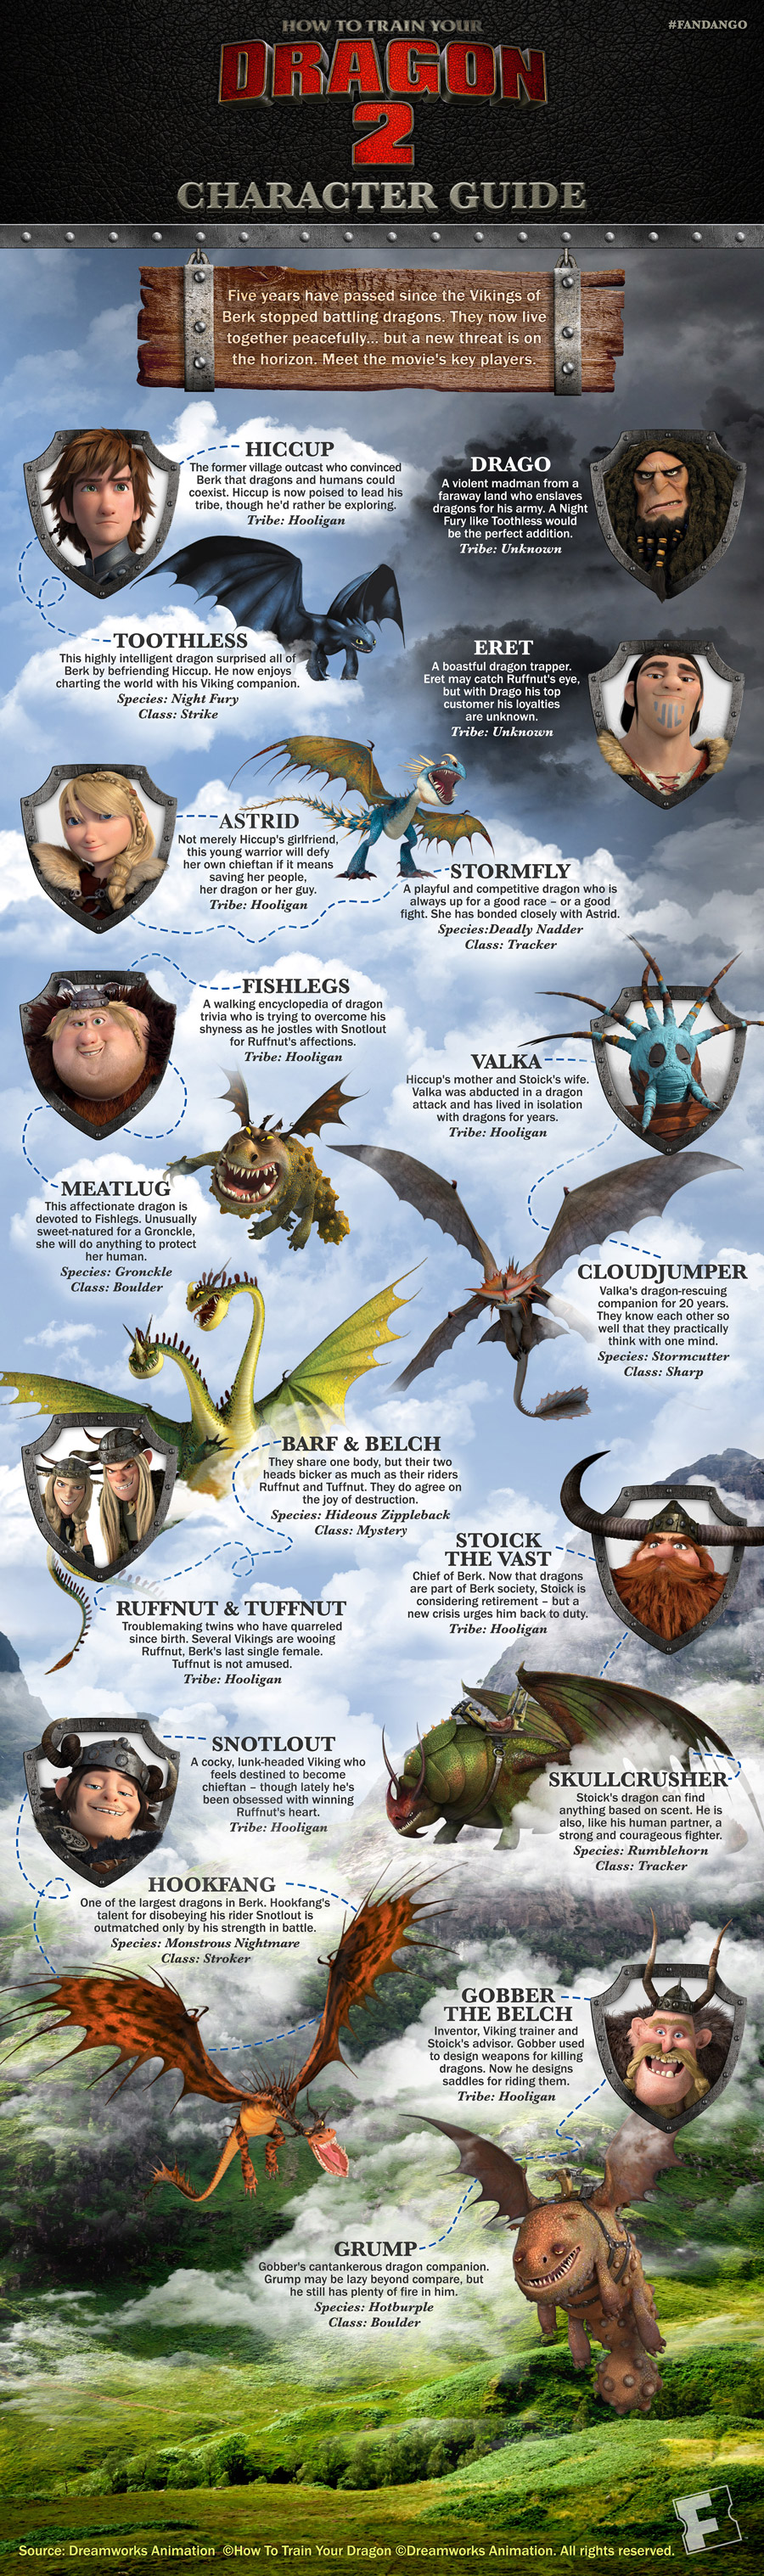 How to Train Your Dragon 2 character guide